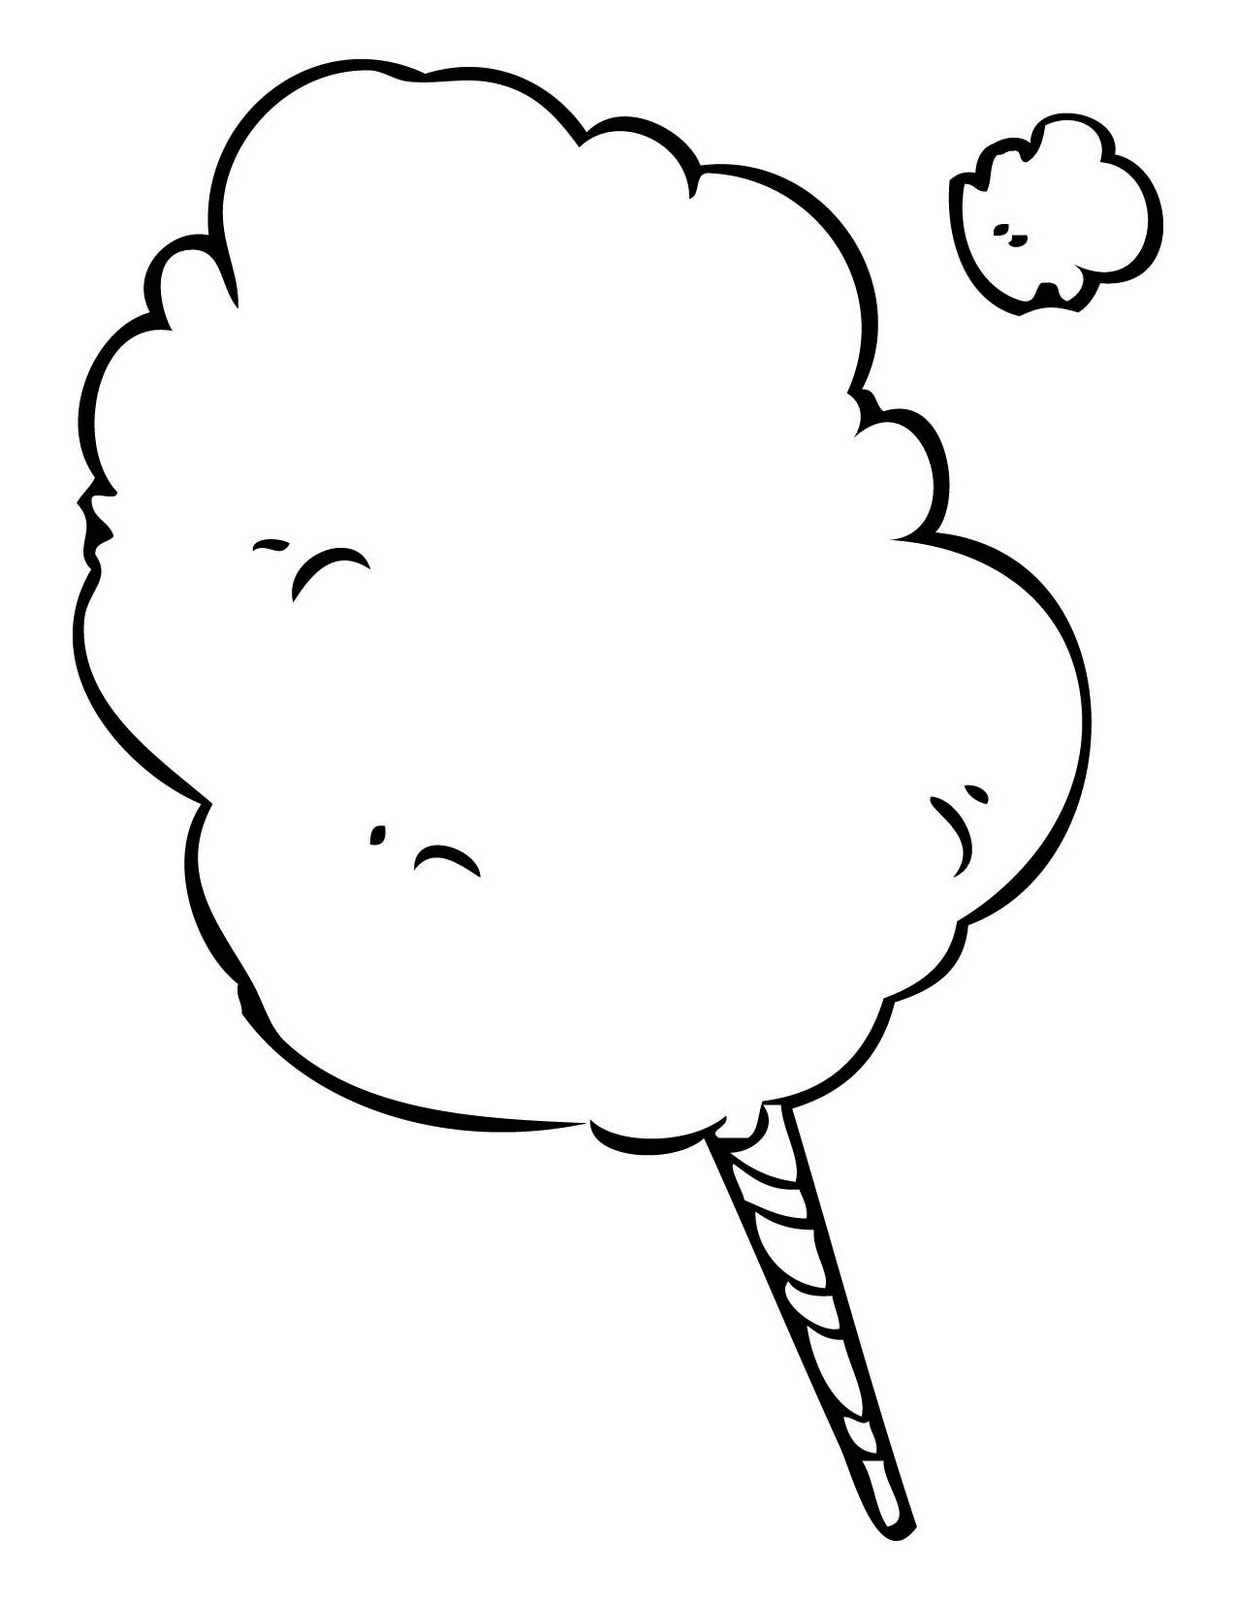 1236x1600 White Cotton Candy Clipart